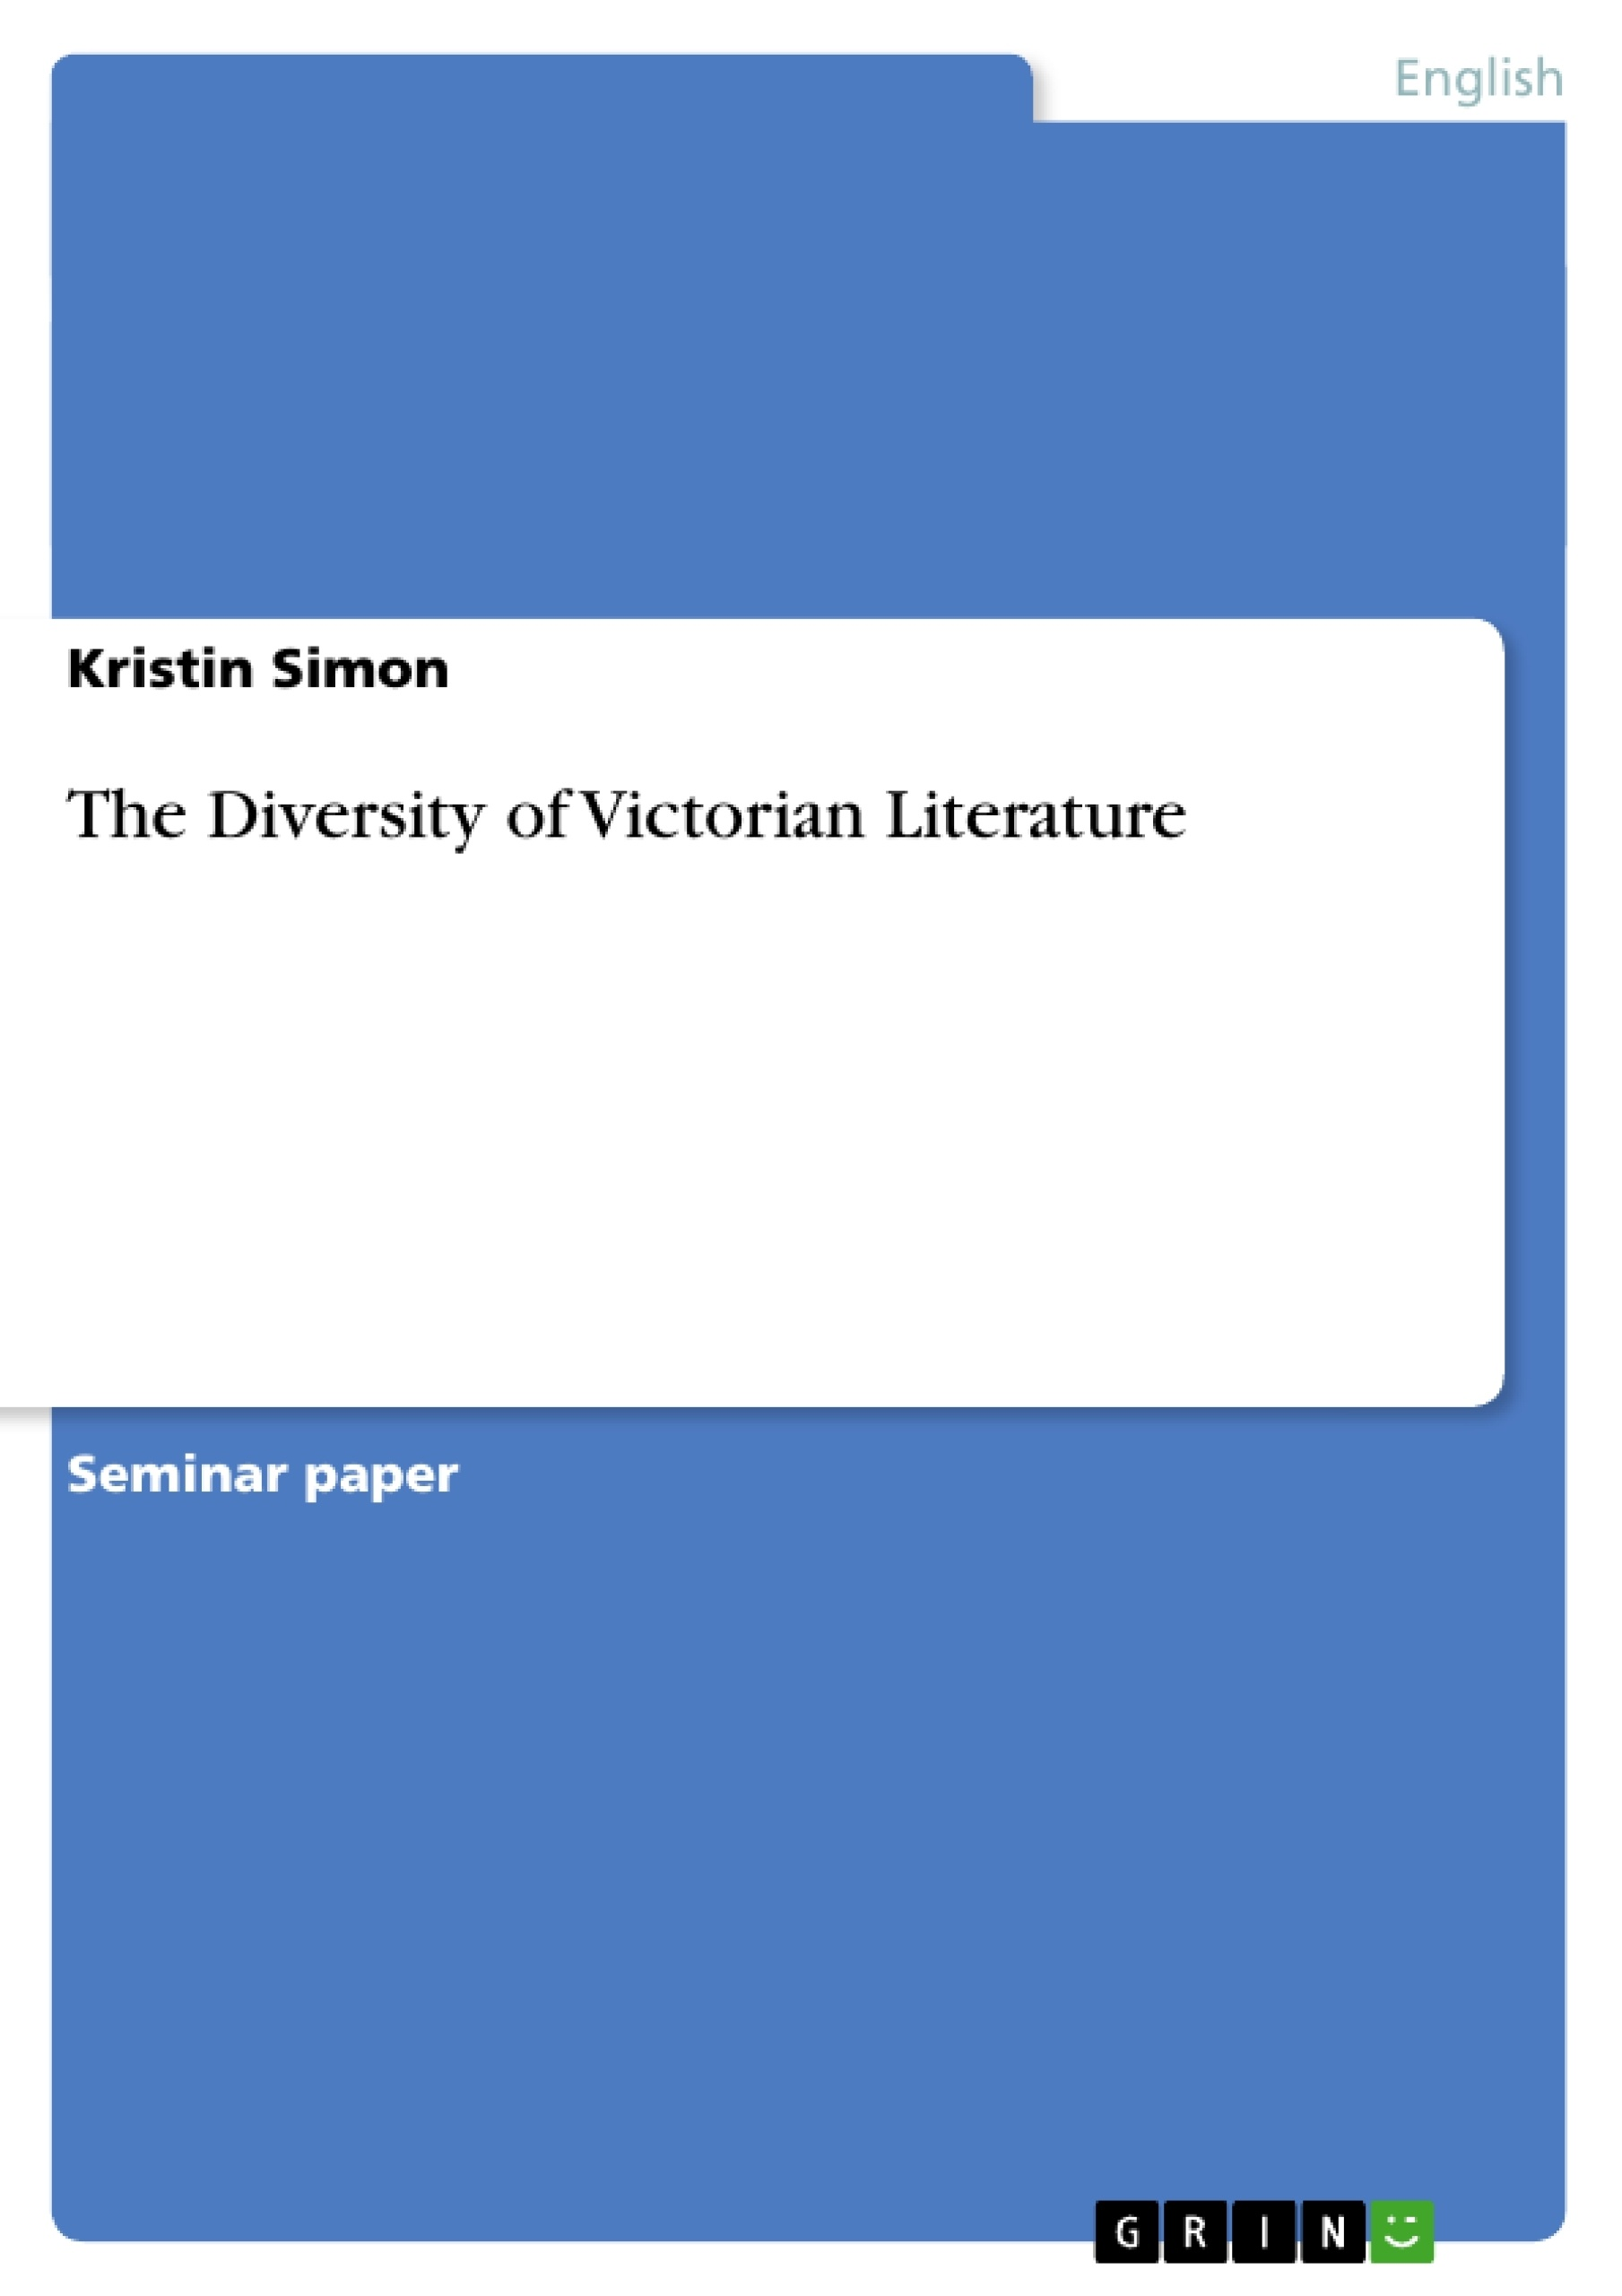 the diversity of victorian literature publish your master s upload your own papers earn money and win an iphone 7